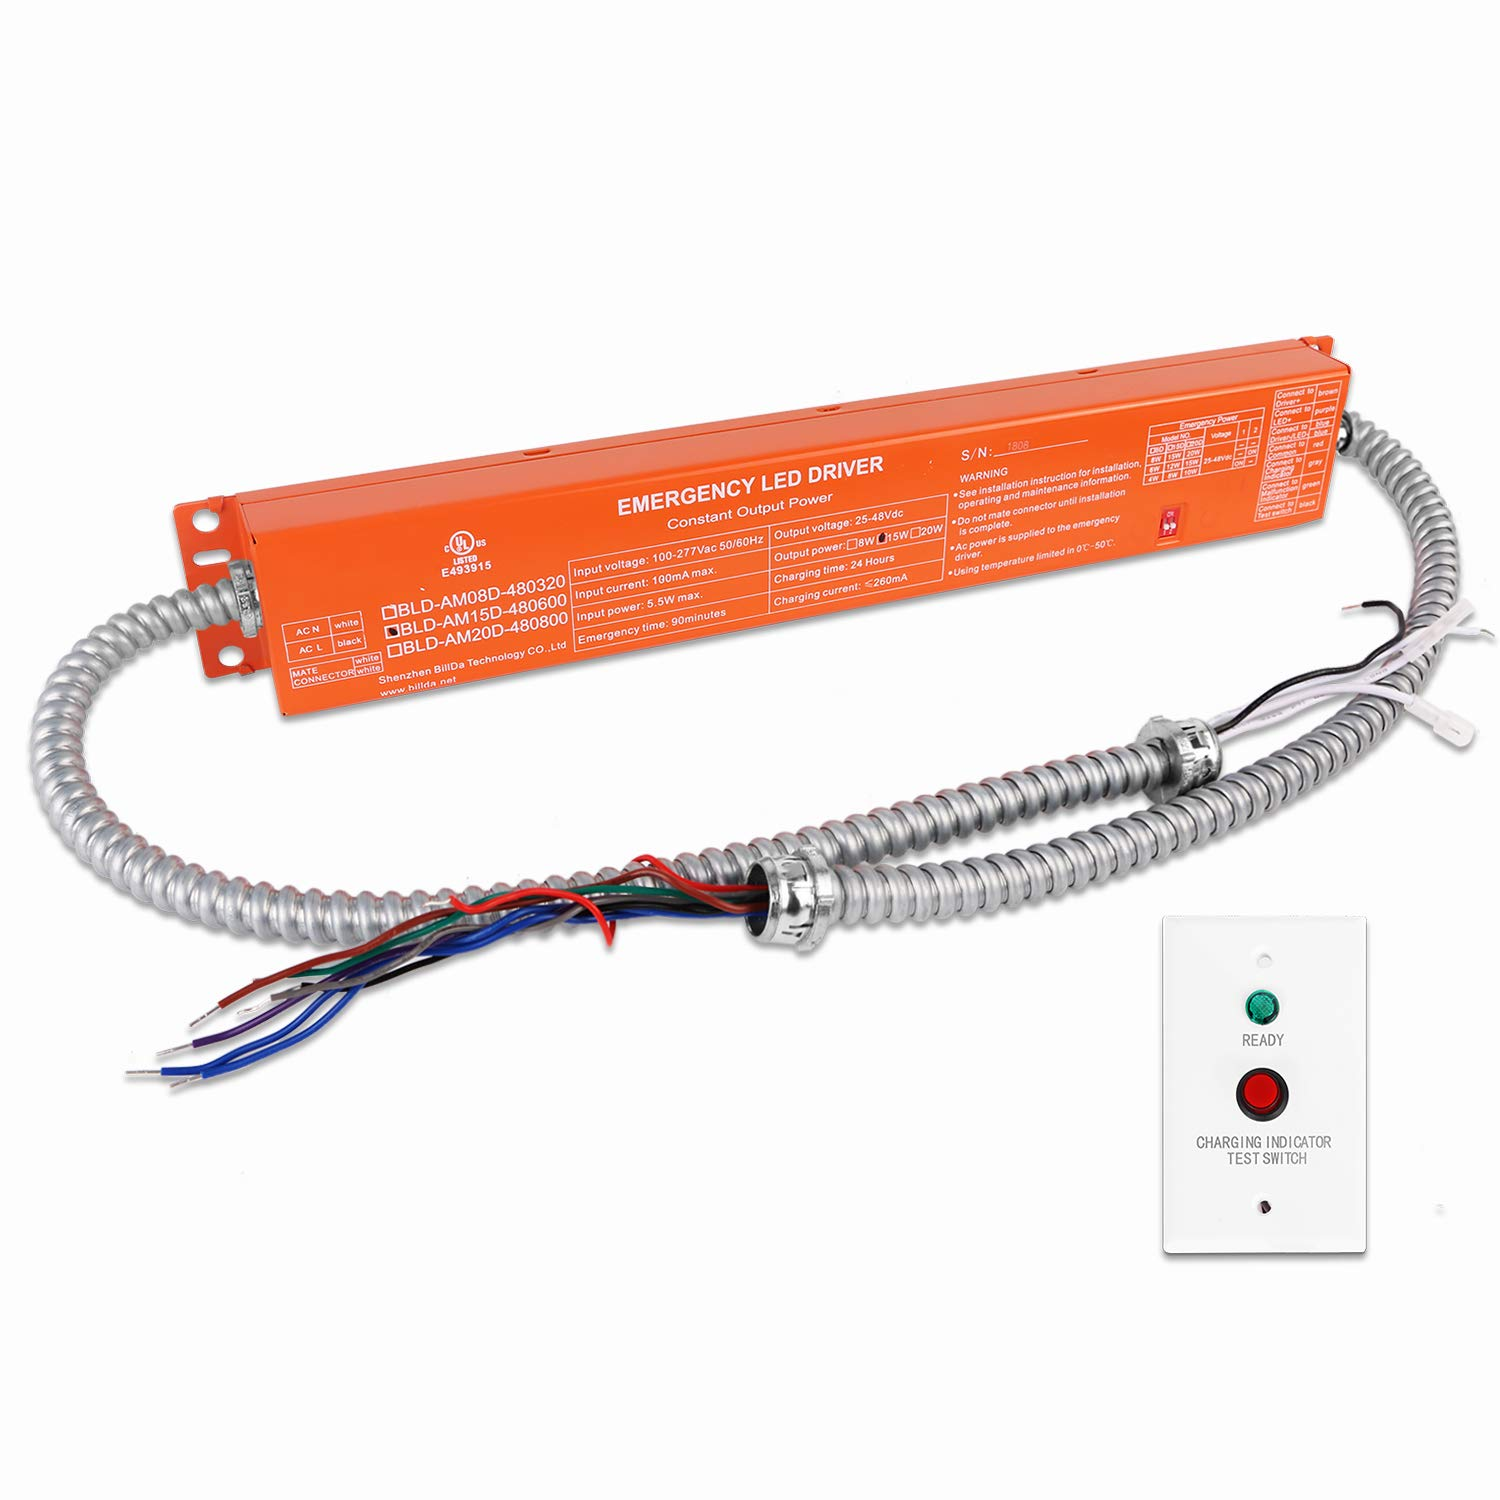 LED Emergency Driver